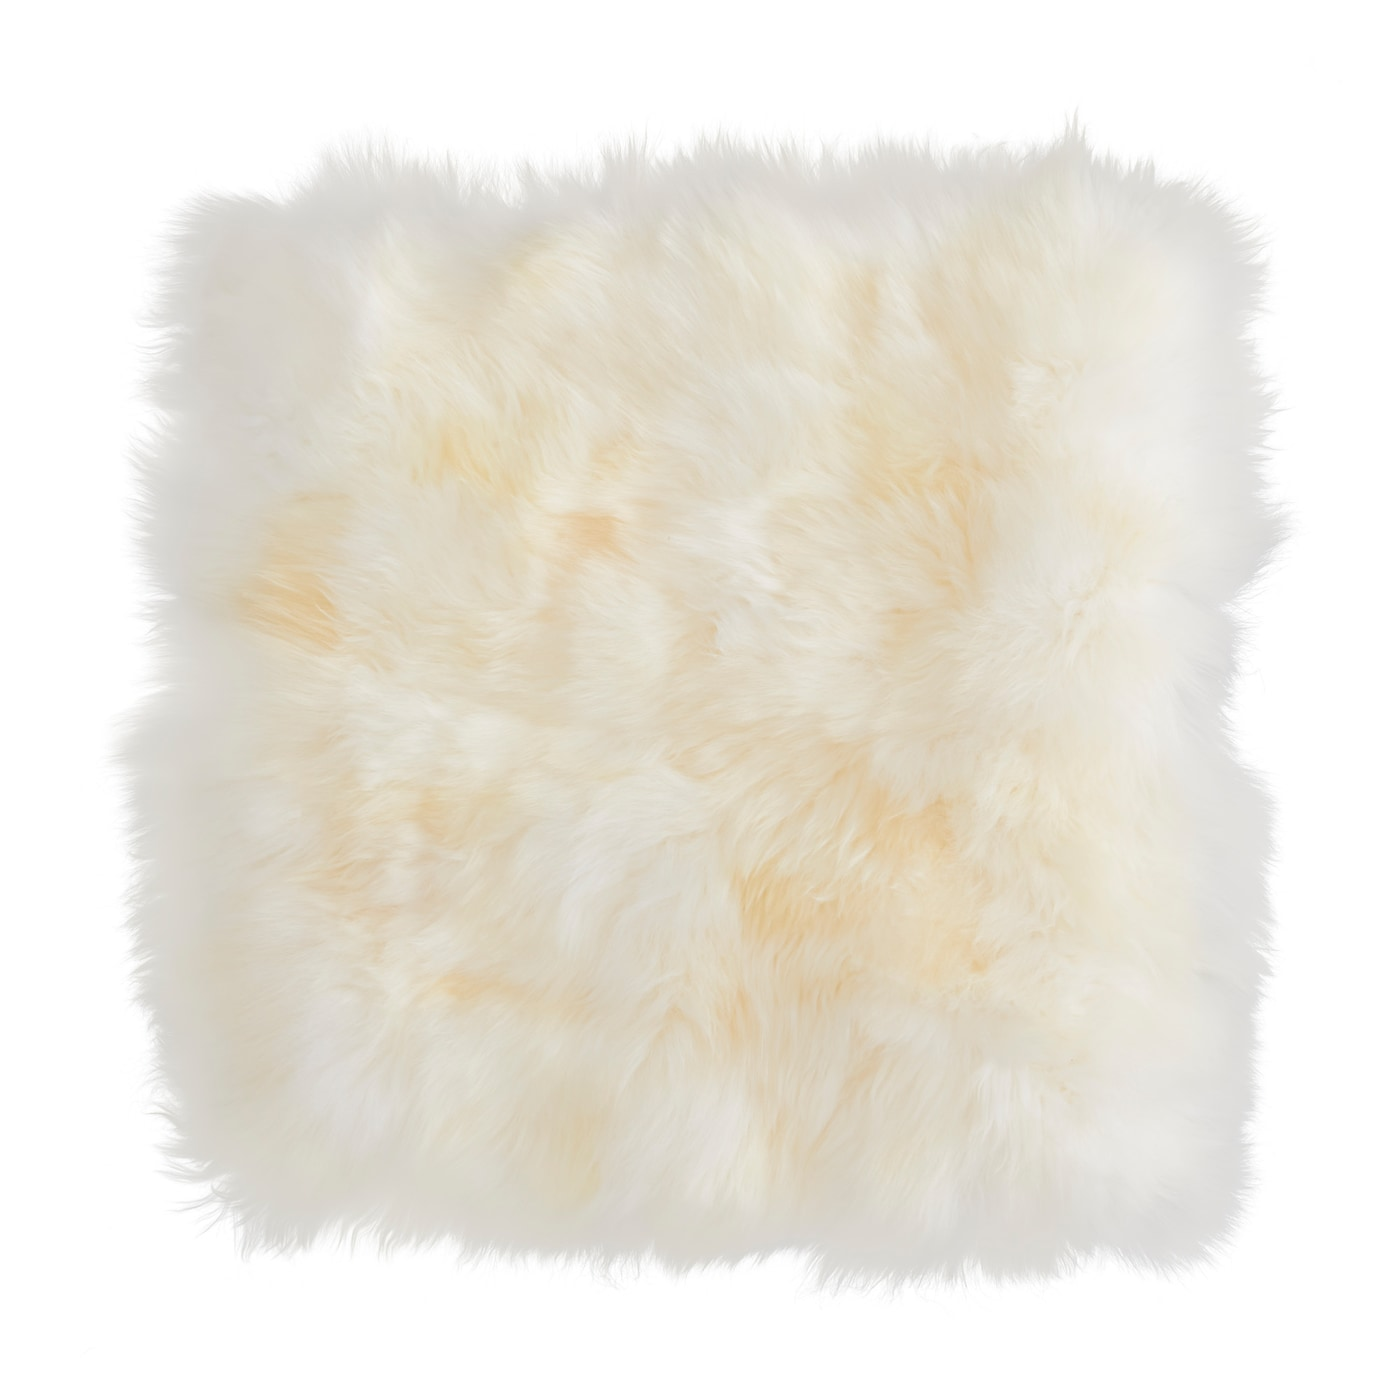 Skold cushion cover sheepskin white 50x50 cm ikea - Coussin fourrure ikea ...